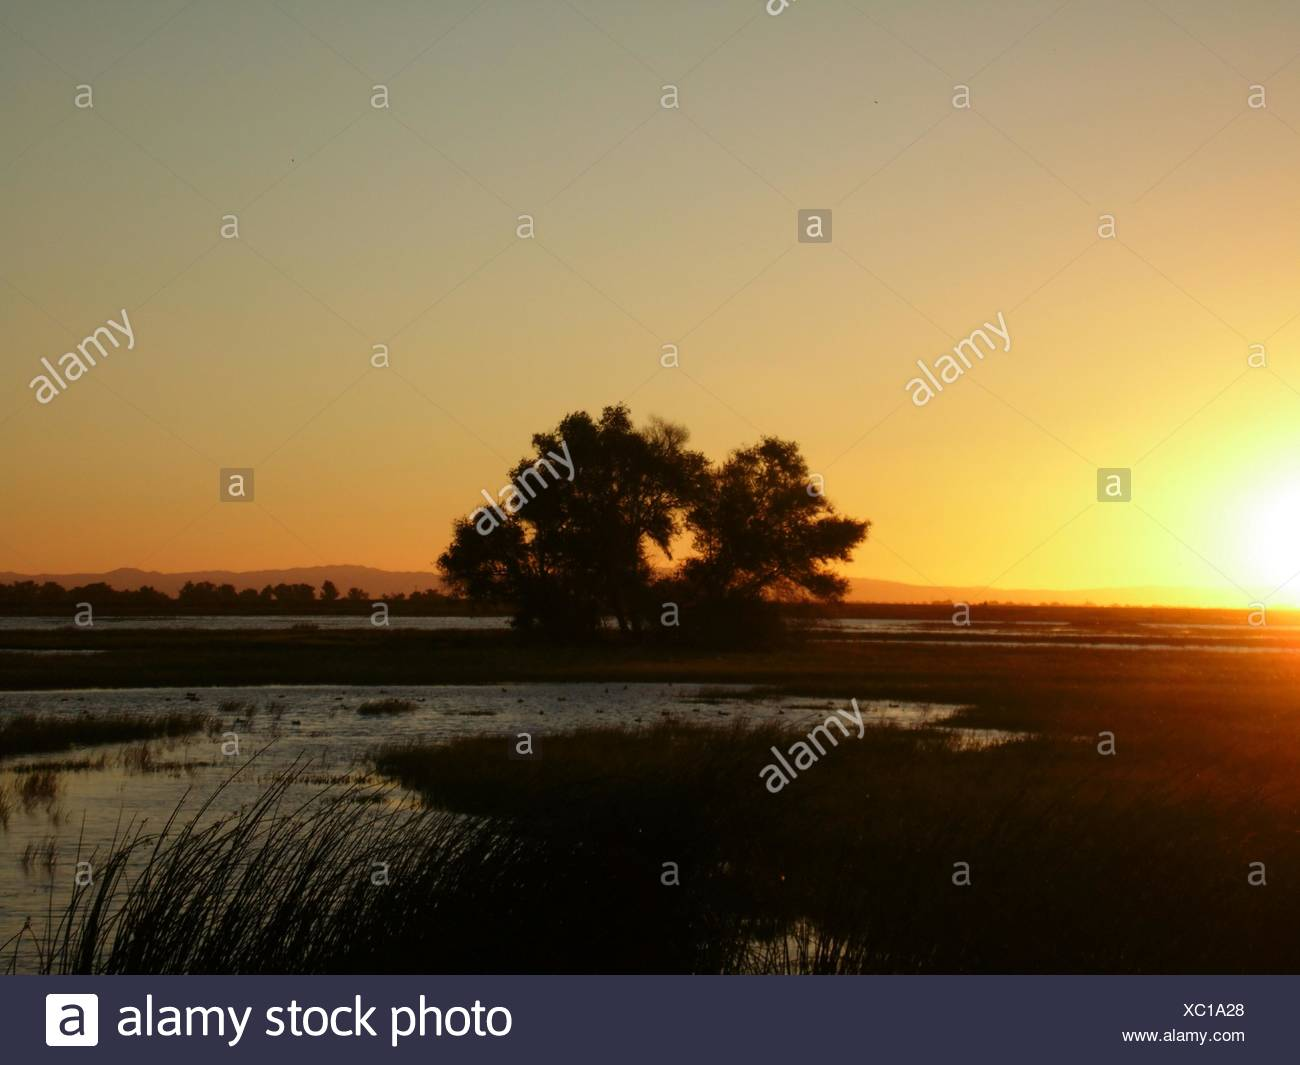 Trees On Field Against Sunset Sky - Stock Image